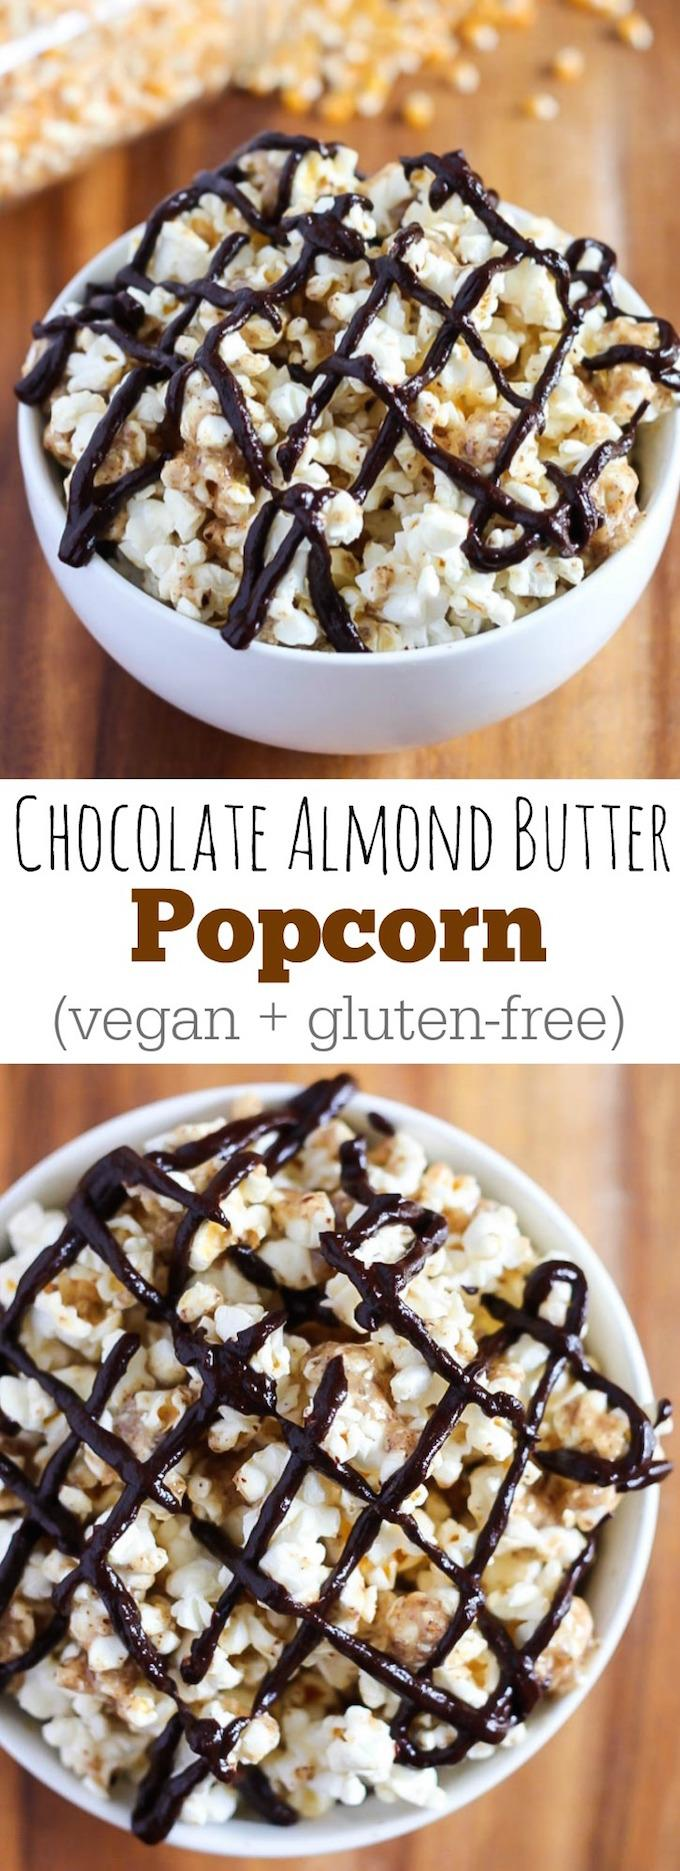 This recipe for vegan, gluten-free Chocolate Almond Butter Popcorn is so easy and makes a perfect healthy movie night dessert! You could even eat it for a snack!